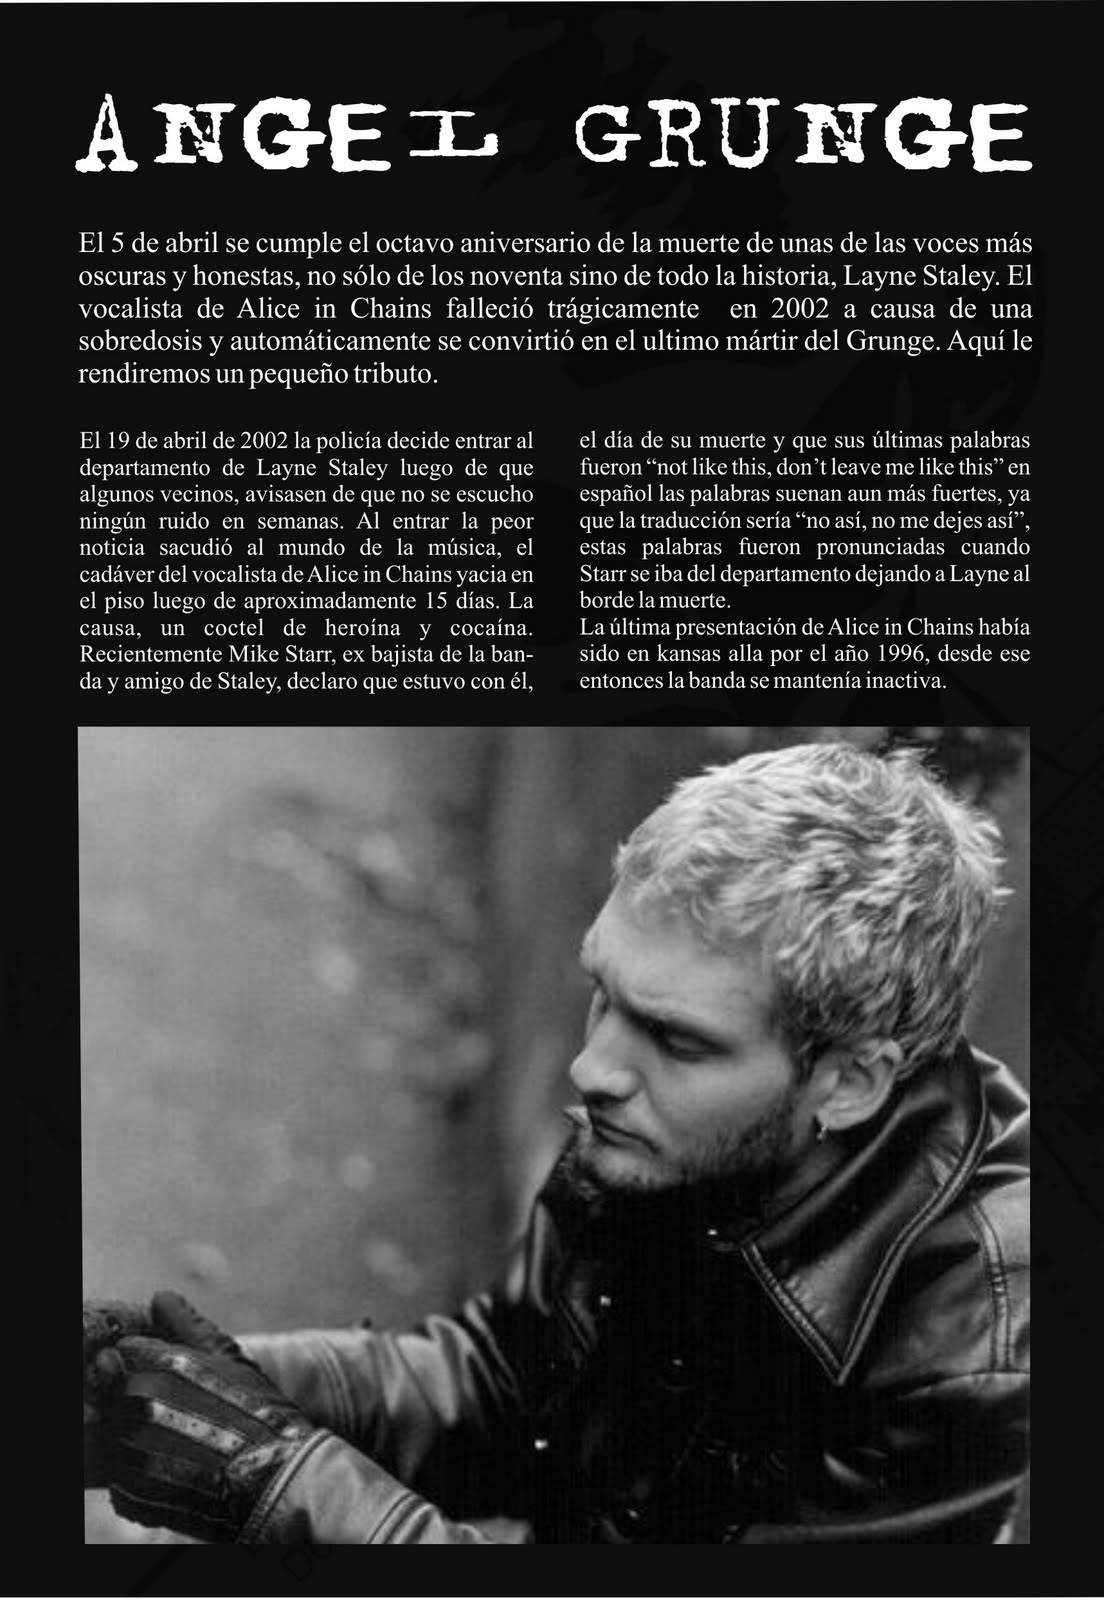 Abiertamente Rock Layne Staley Angel Grunge